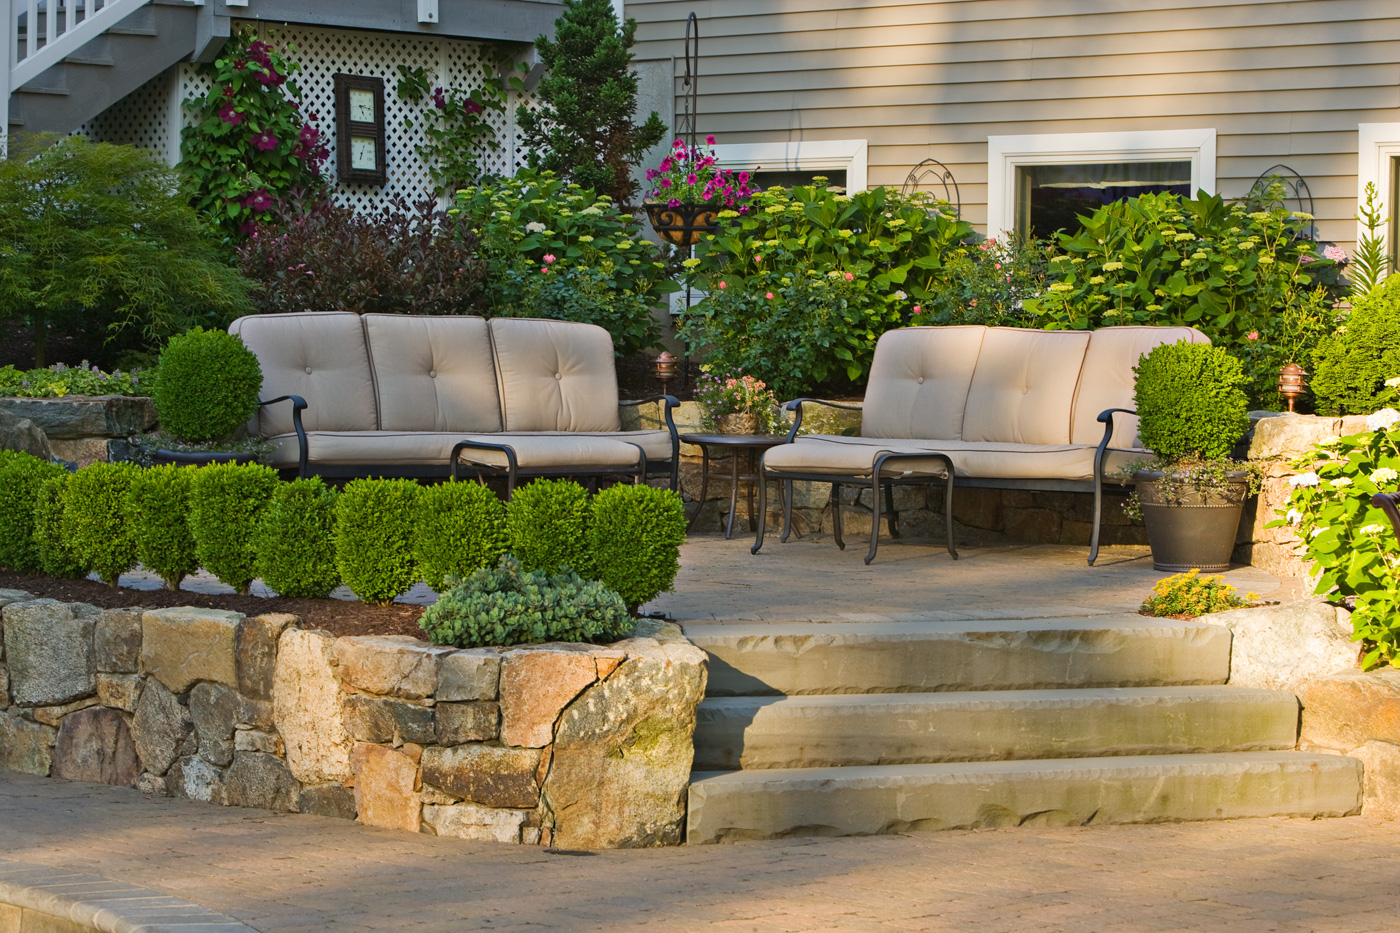 Bluestone Steps by Cording Landscape Design